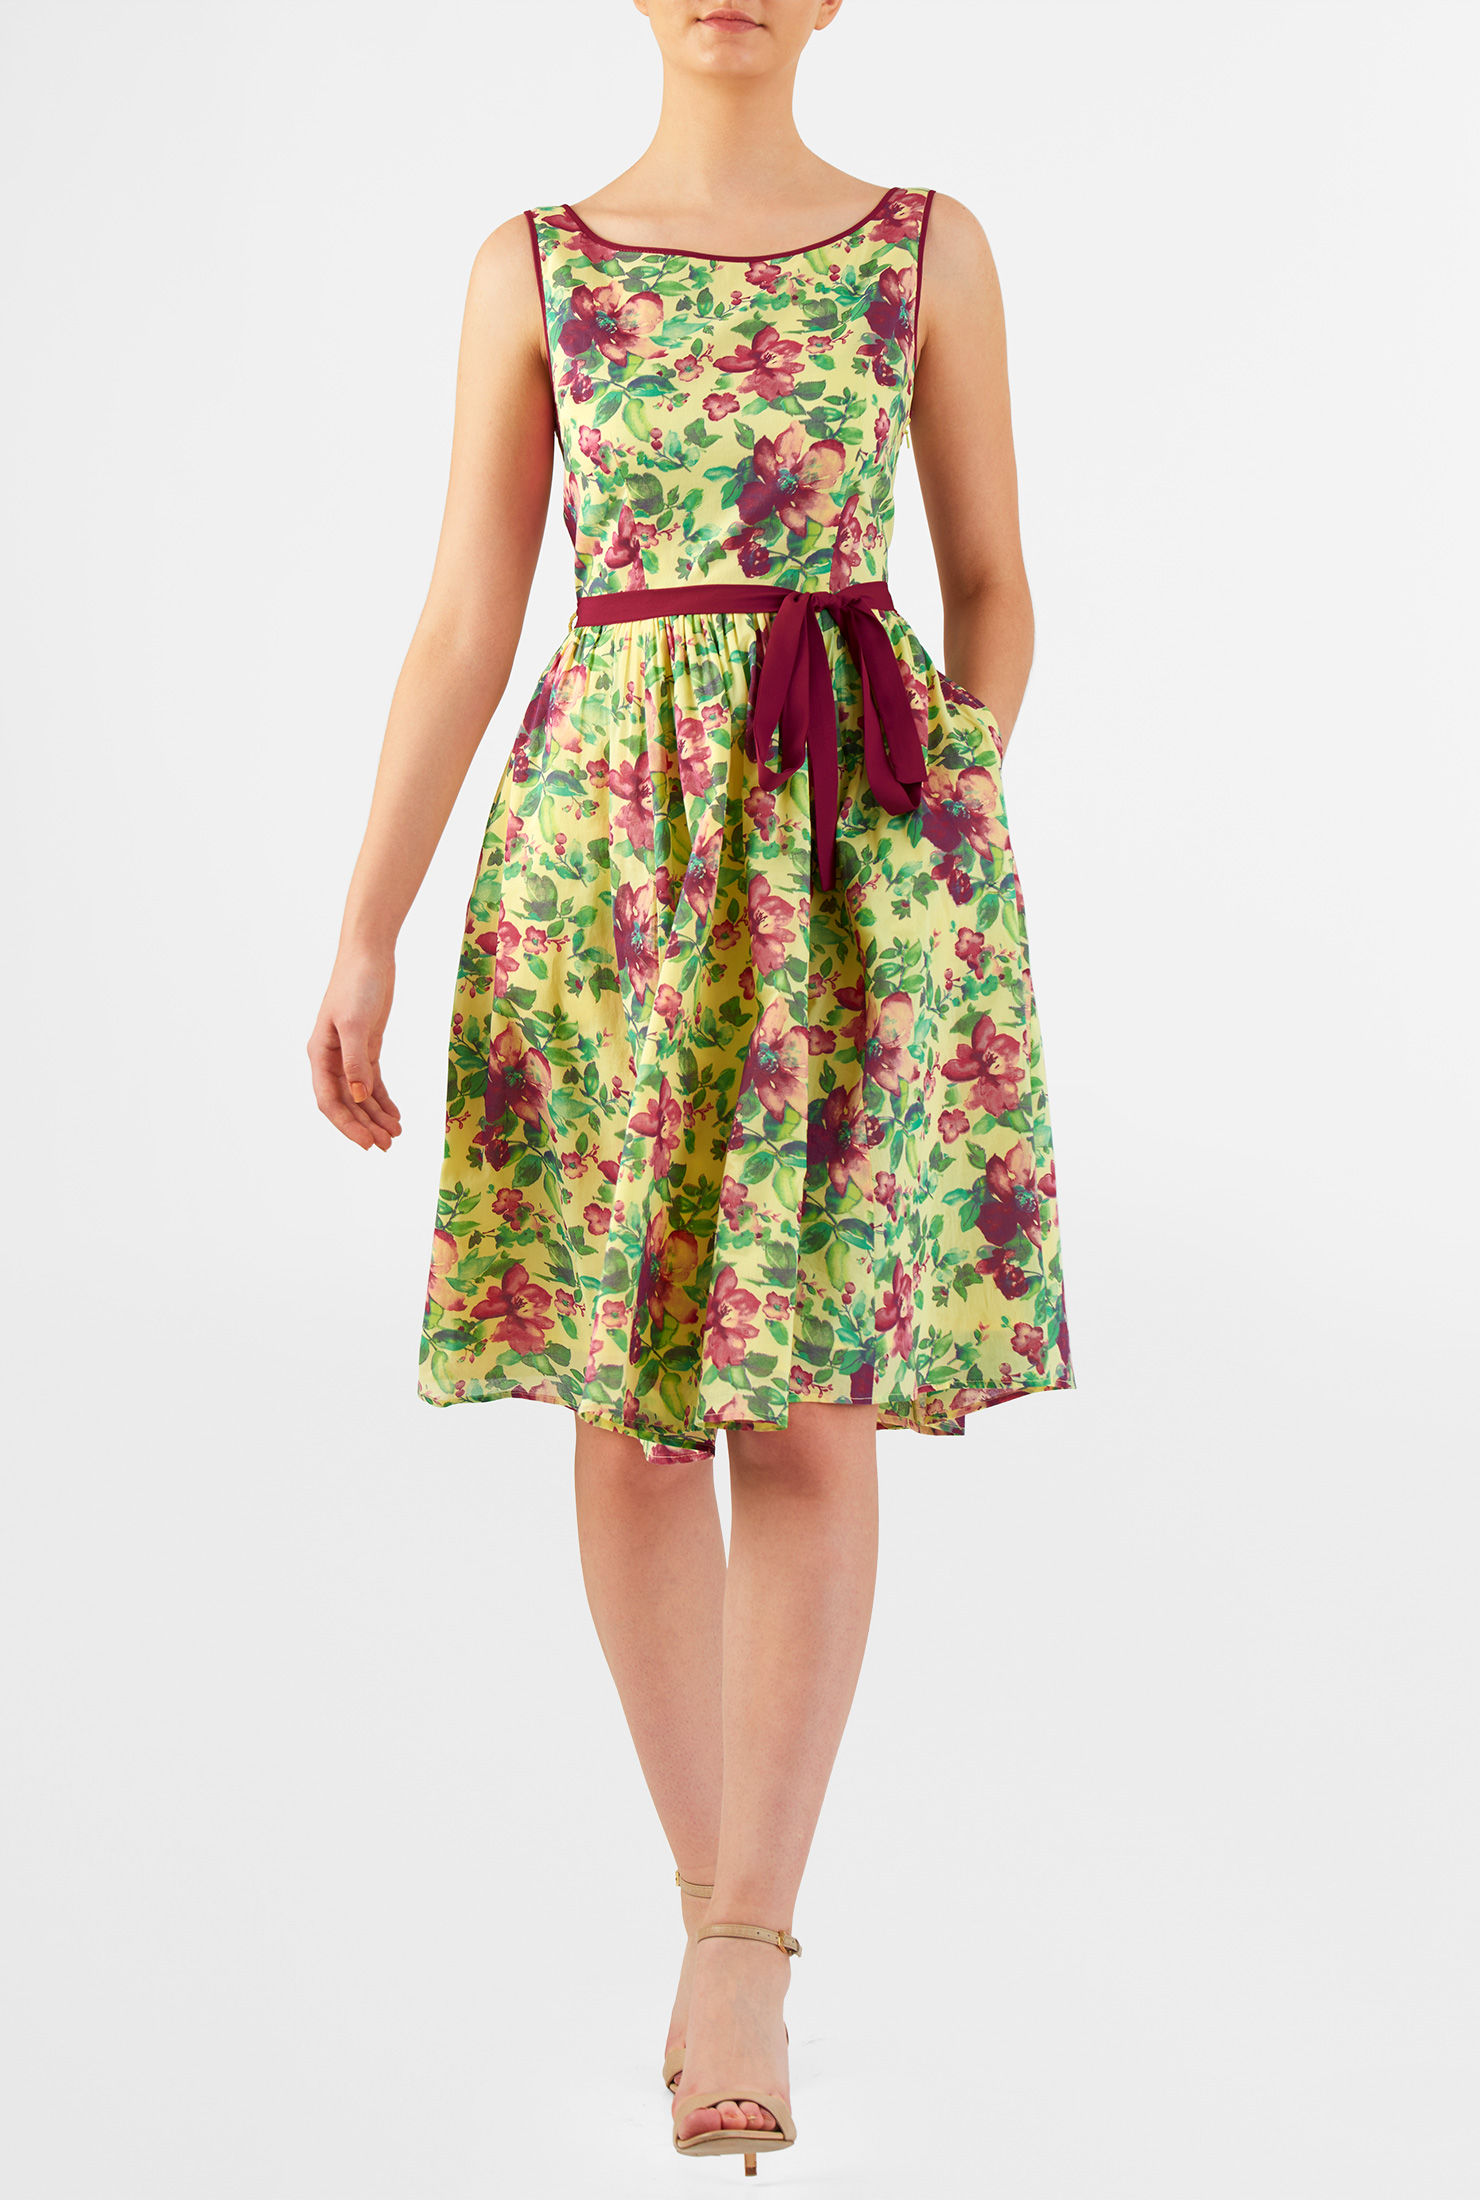 eShakti Women's Floral print cotton contrast trim dress CL0049947